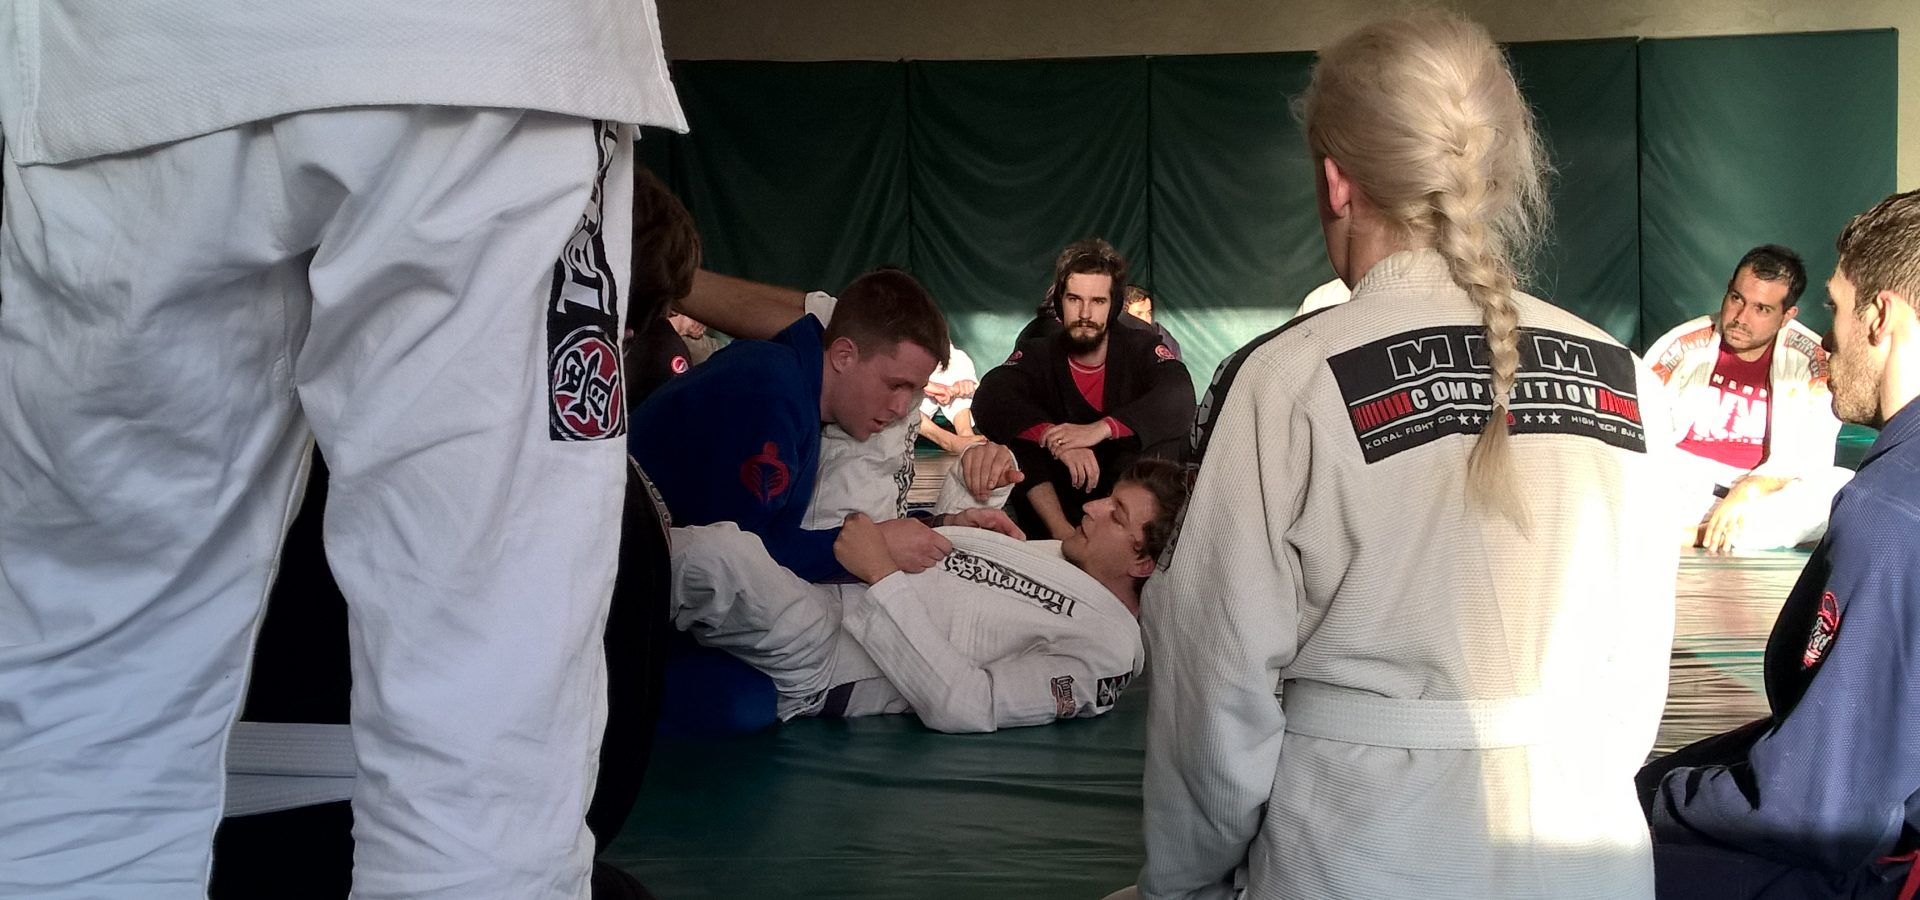 Image of BJJ class